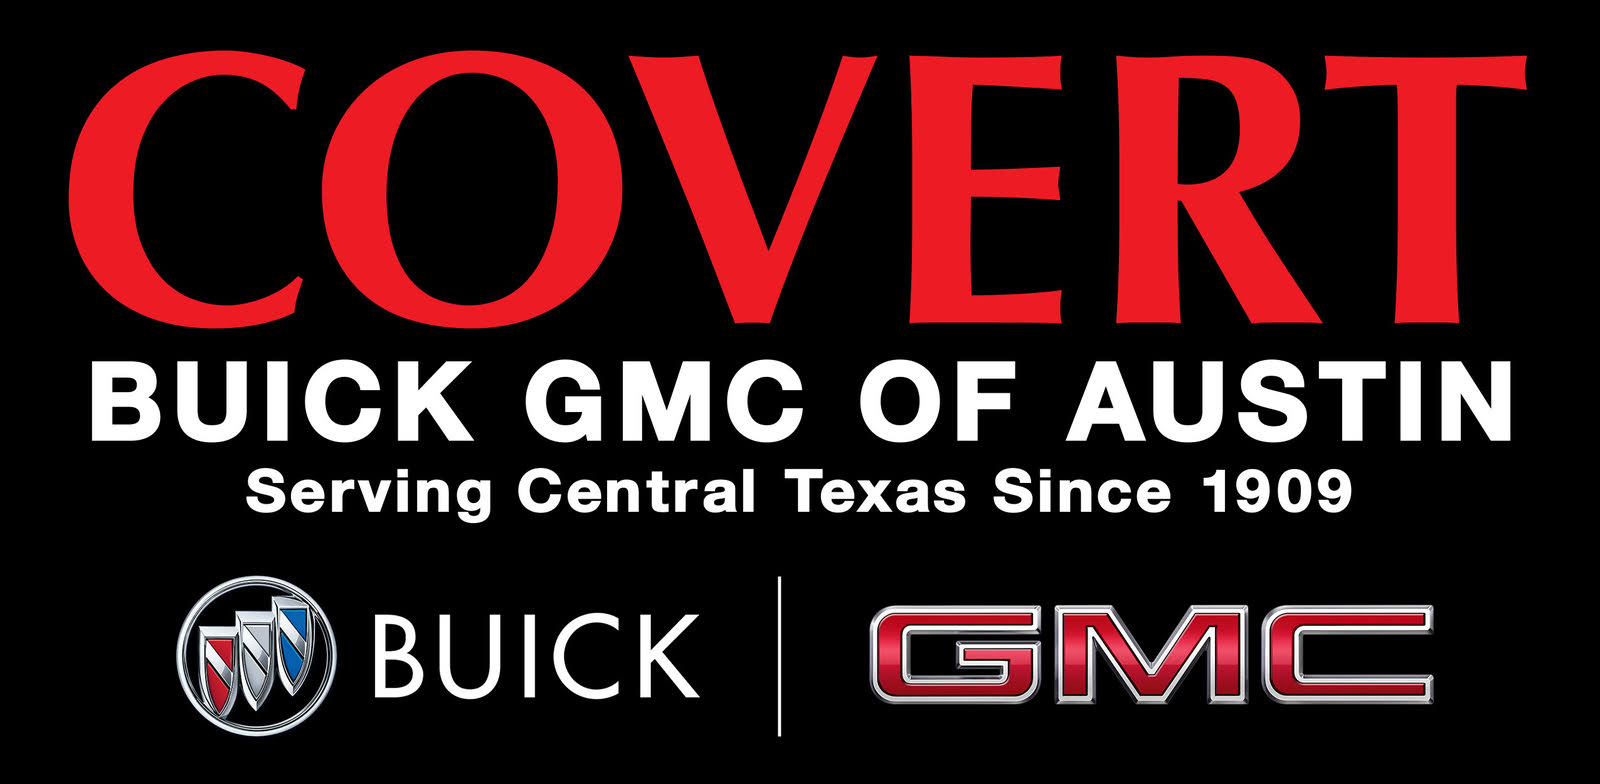 Covert Gmc Austin >> Covert Buick Gmc Austin Austin Tx Read Consumer Reviews Browse